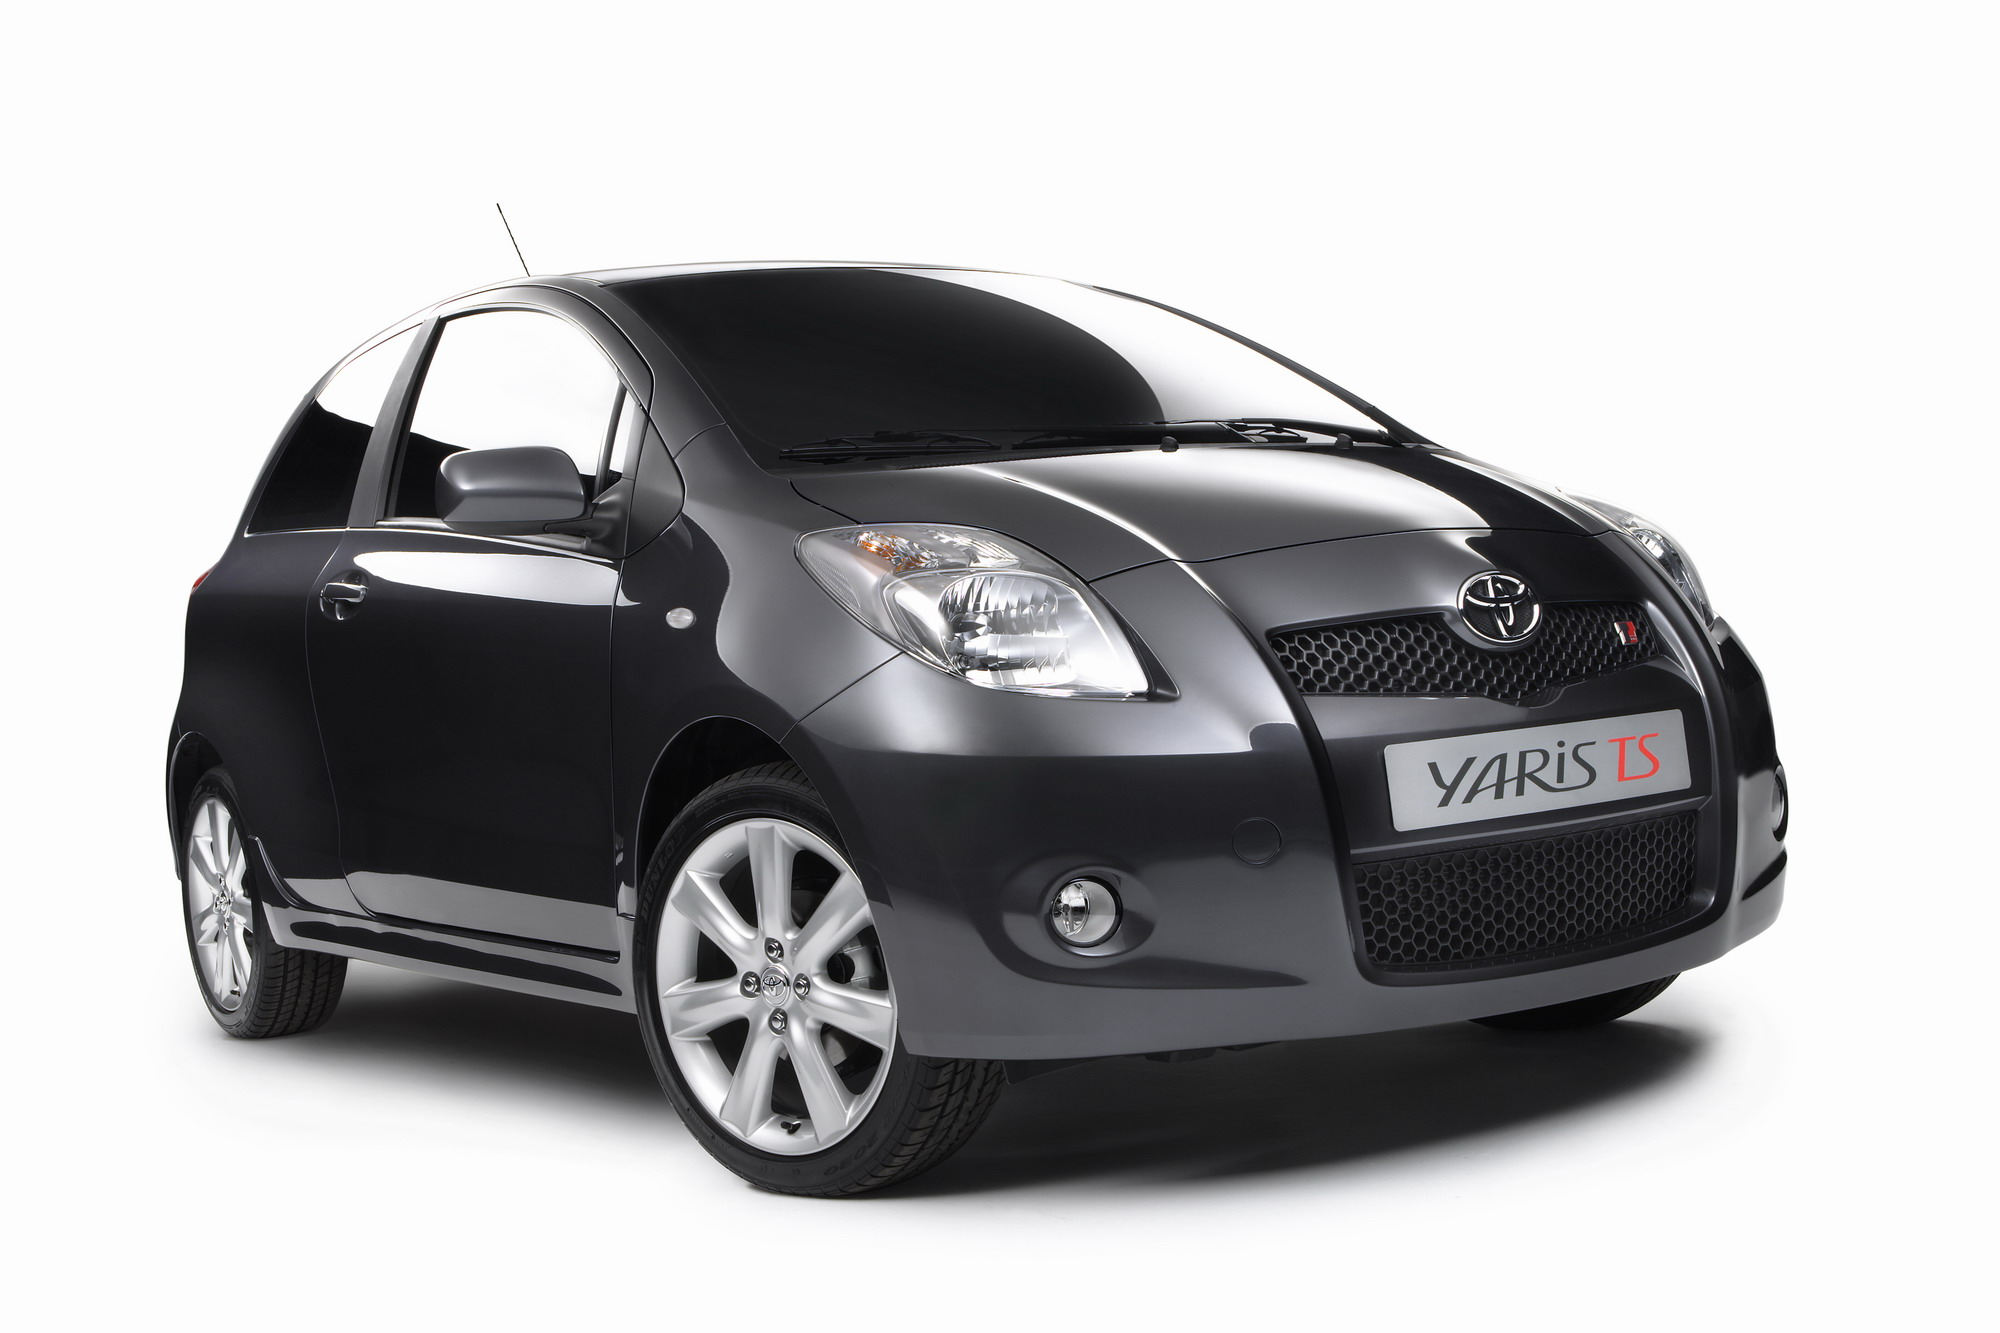 toyota yaris ts to be revealed at paris motor show news top speed. Black Bedroom Furniture Sets. Home Design Ideas